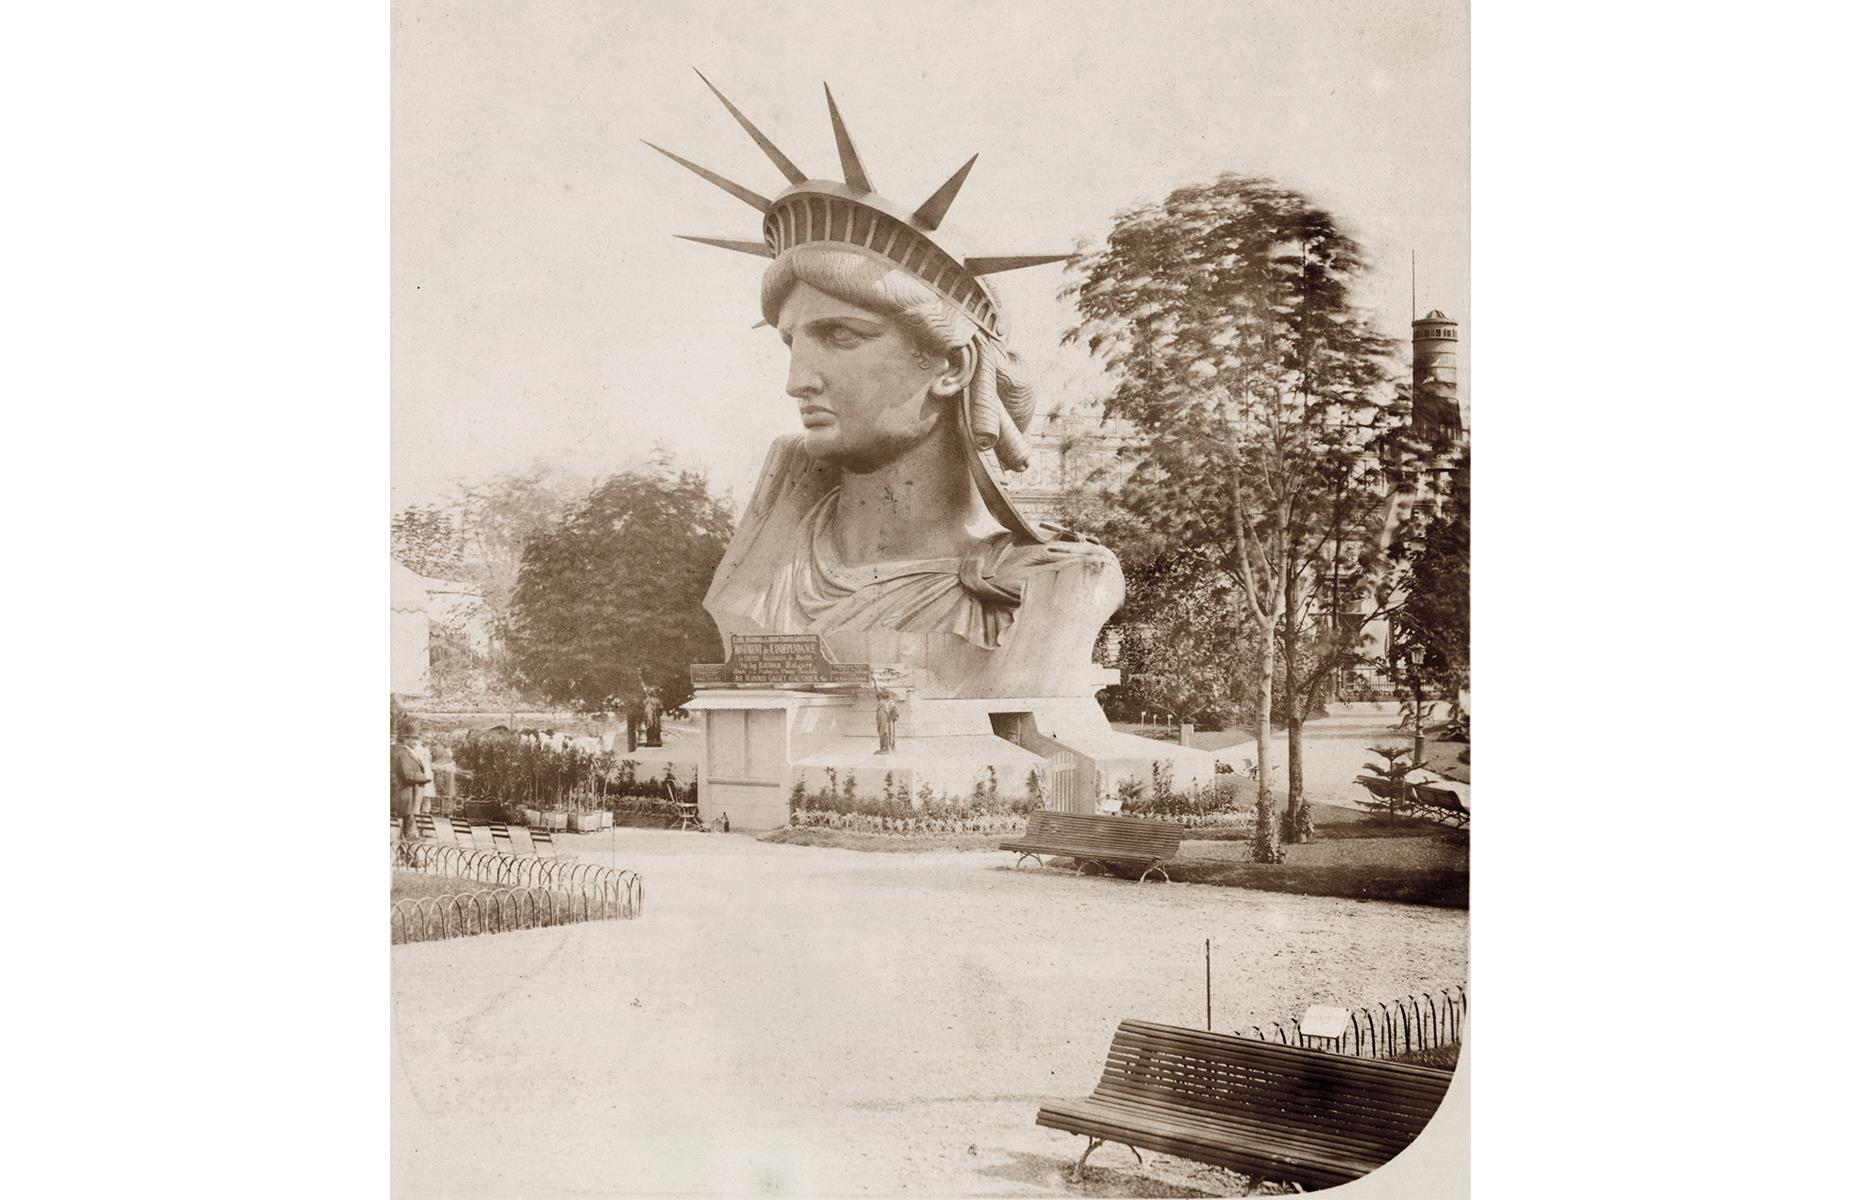 Slide 10 of 47: Lady Liberty, a gift from France in the late 19th century, is one of the USA's most storied attractions. The giant green statue stands more than 300 feet (91m) high and has towered over New York's Liberty Island since 1886. Before she made it to the Big Apple, though, she was displayed at the Paris World's Fair in 1878 (pictured).